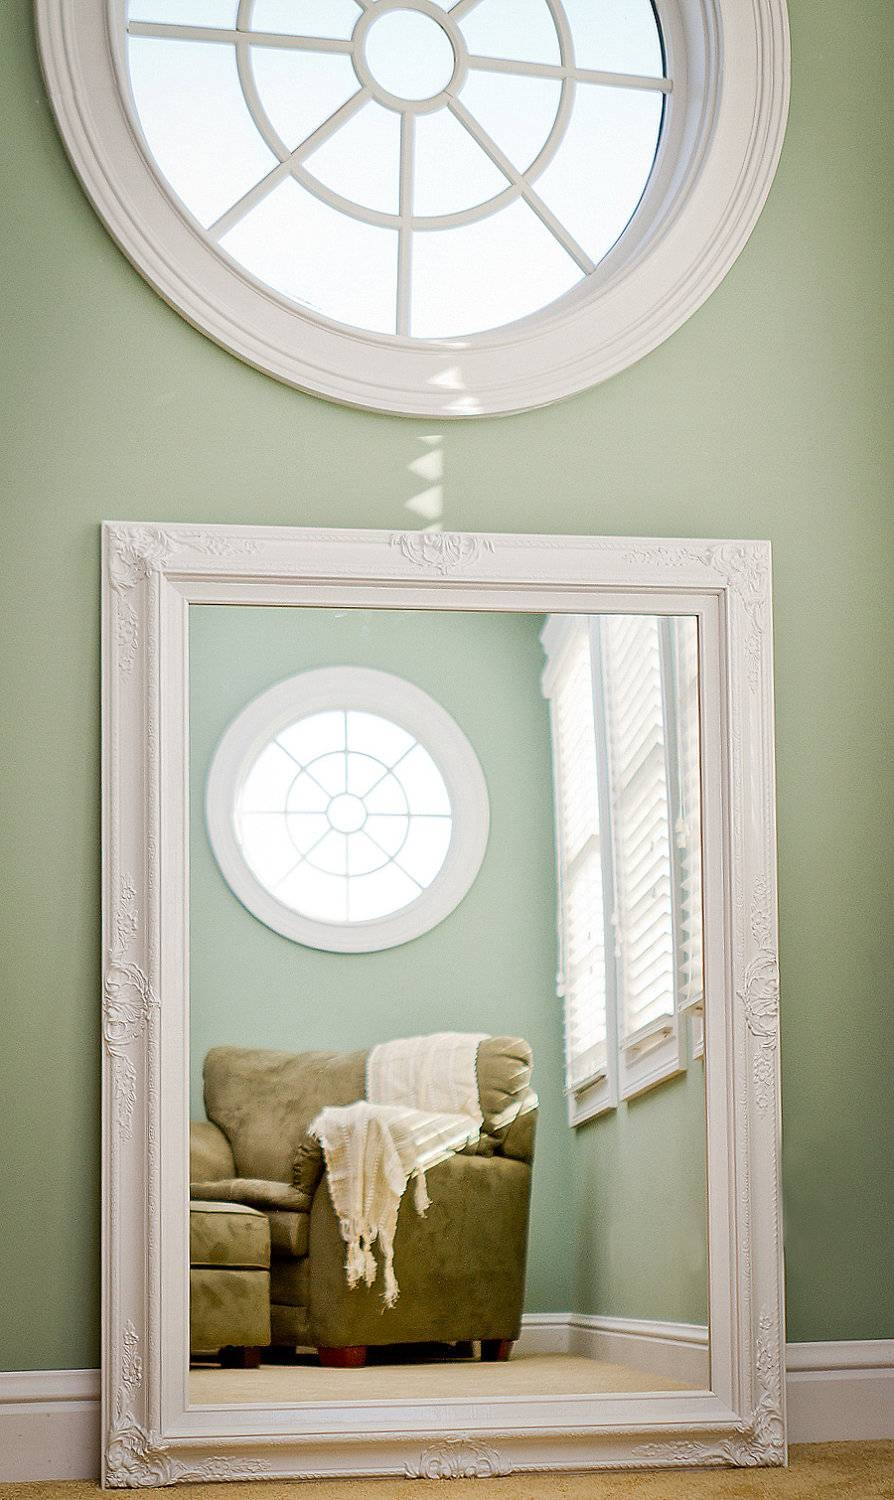 Large White Mirror For Sale 44X32 Vintage Inspired inside White Large Shabby Chic Mirrors (Image 5 of 15)